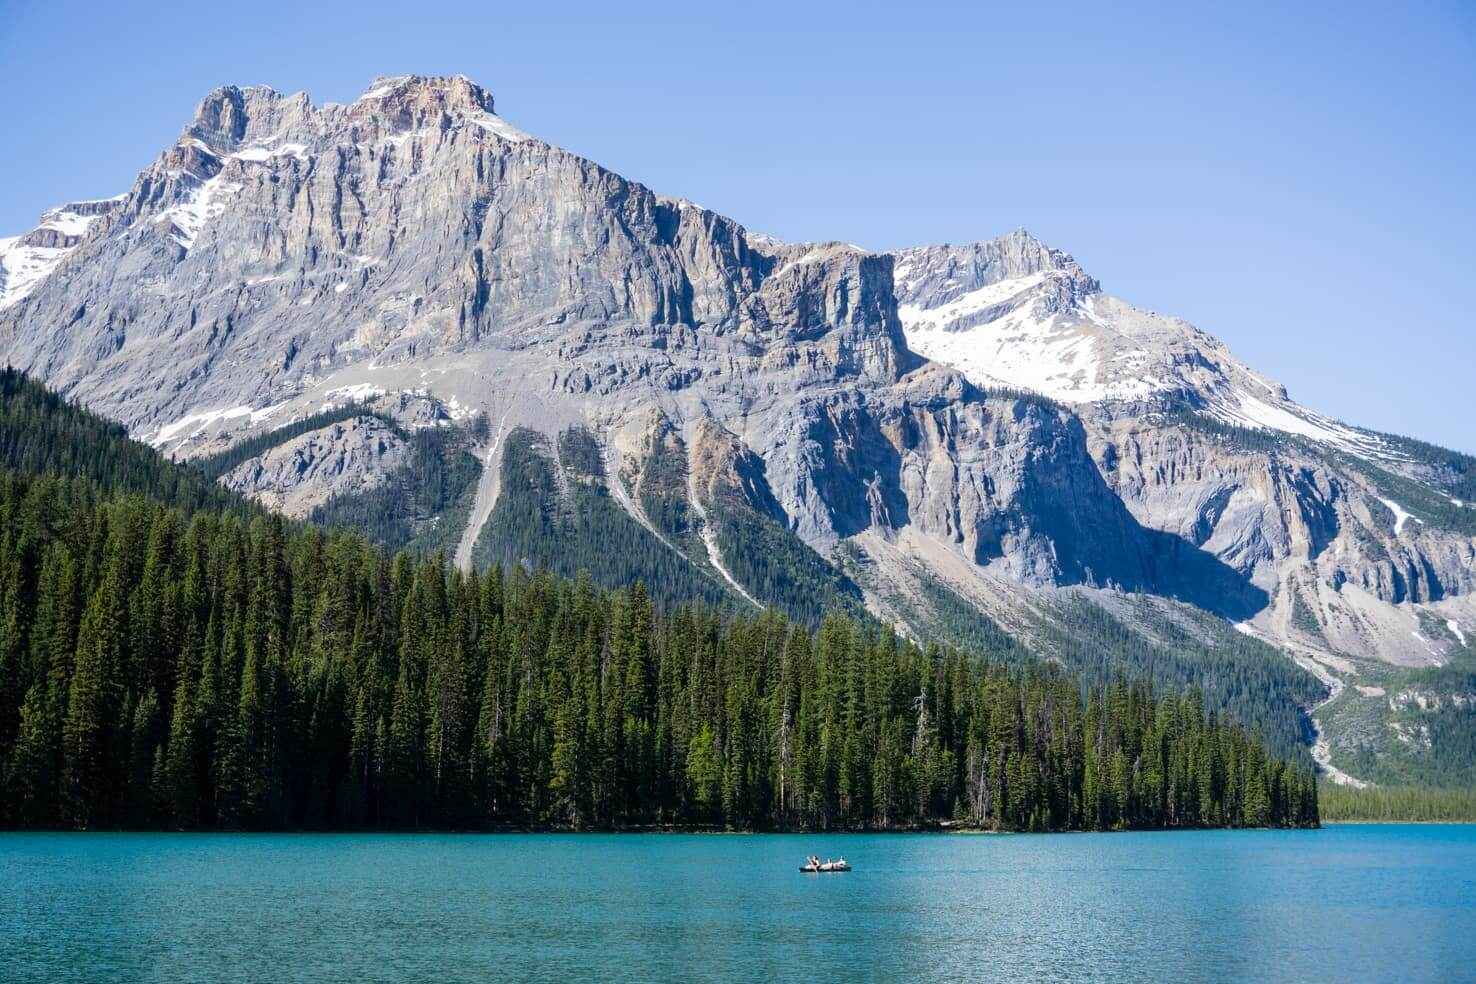 Western Canada Road Trip from Calgary to Vancouver - Emerald Lake in Yoho National Park